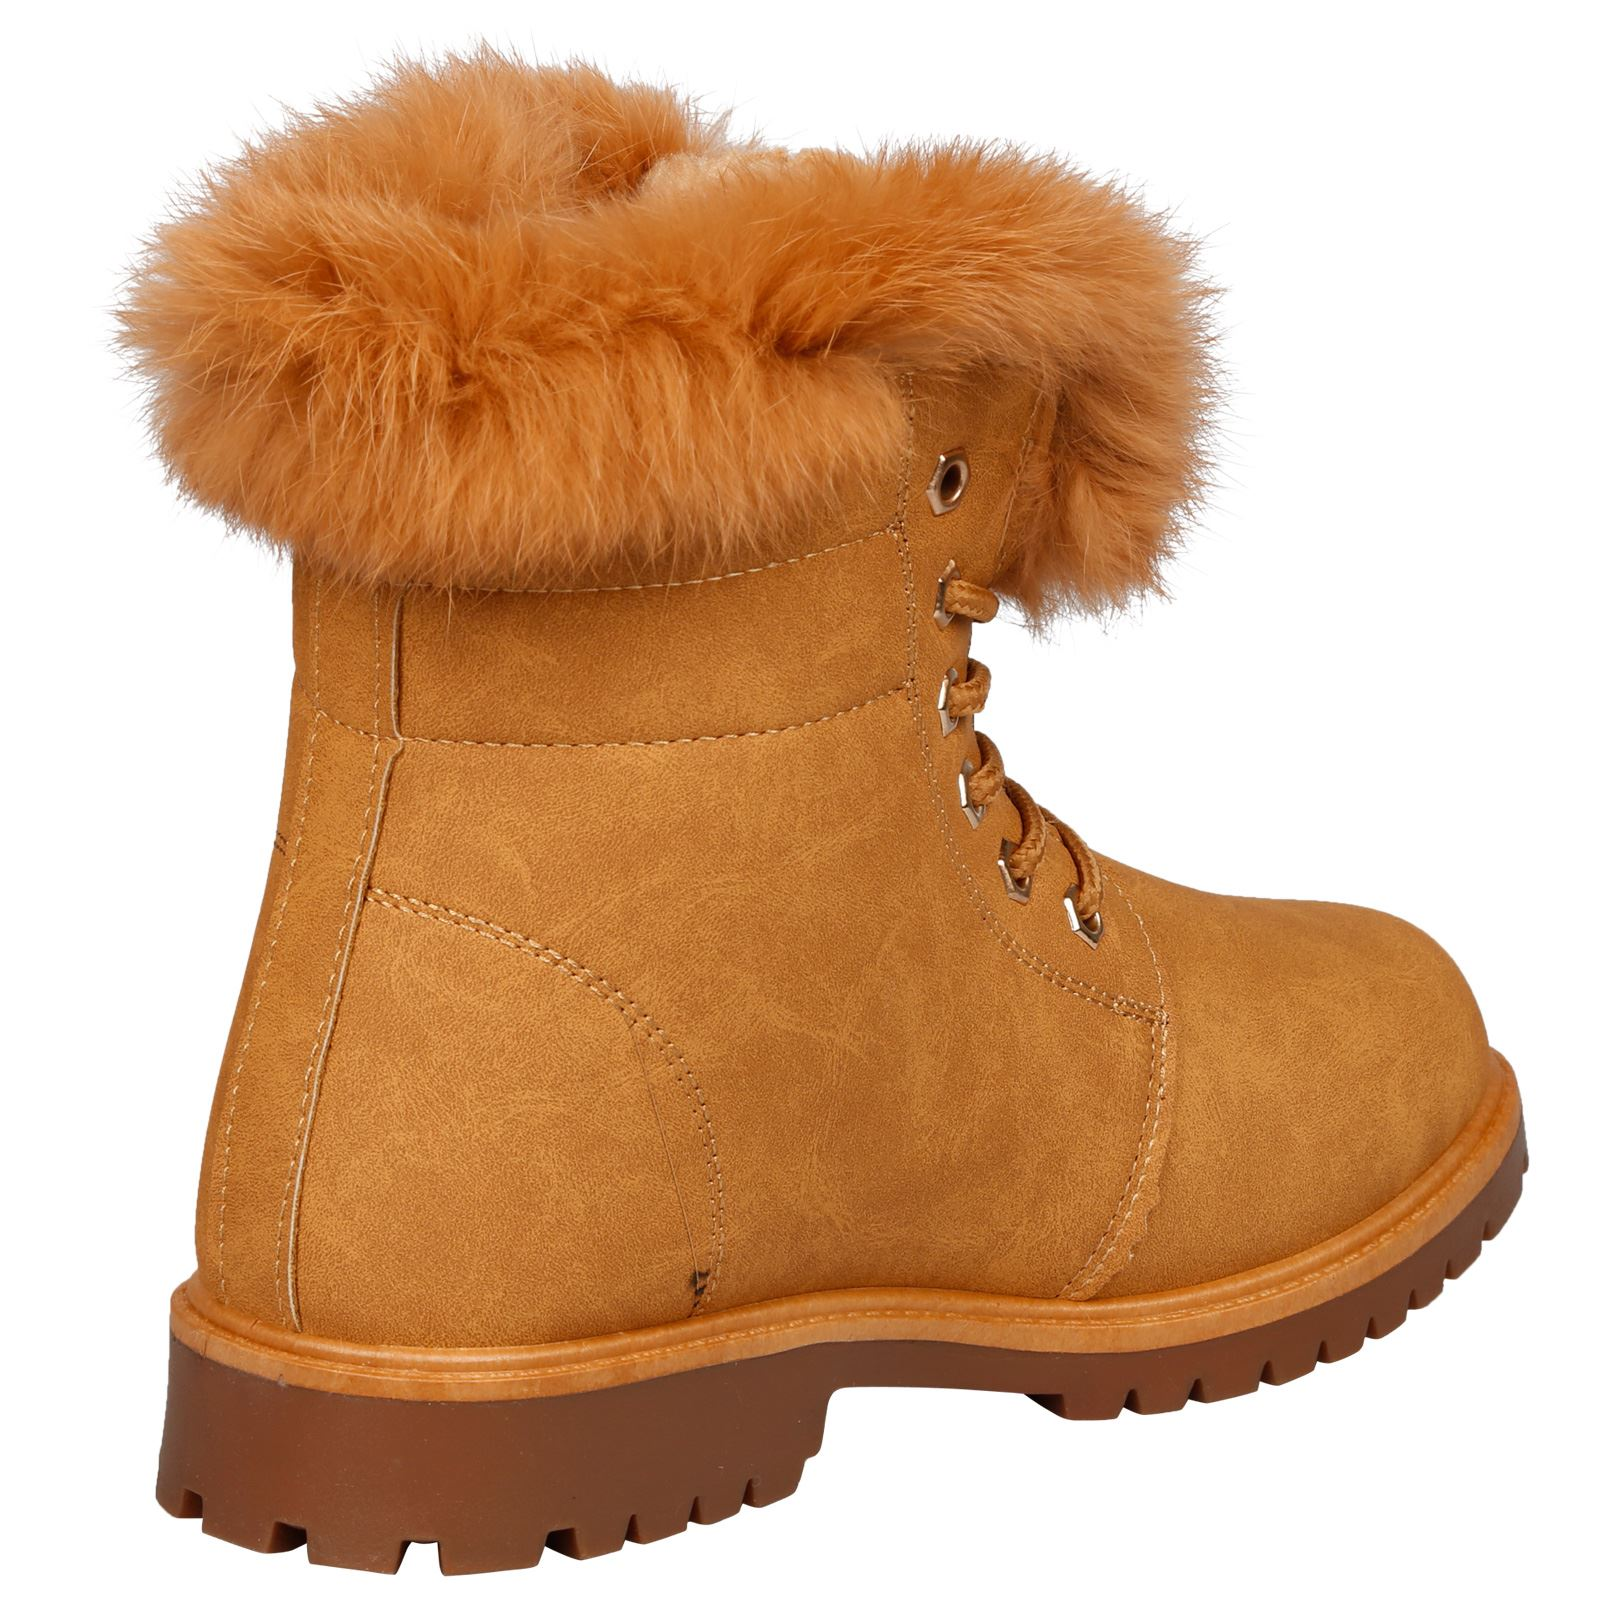 NEW-WOMEN-SHOES-LADIES-FUR-LINED-LOW-HEEL-LACE-UP-ANKLE-BOOTS-CASUAL-STYLE-SIZE thumbnail 14